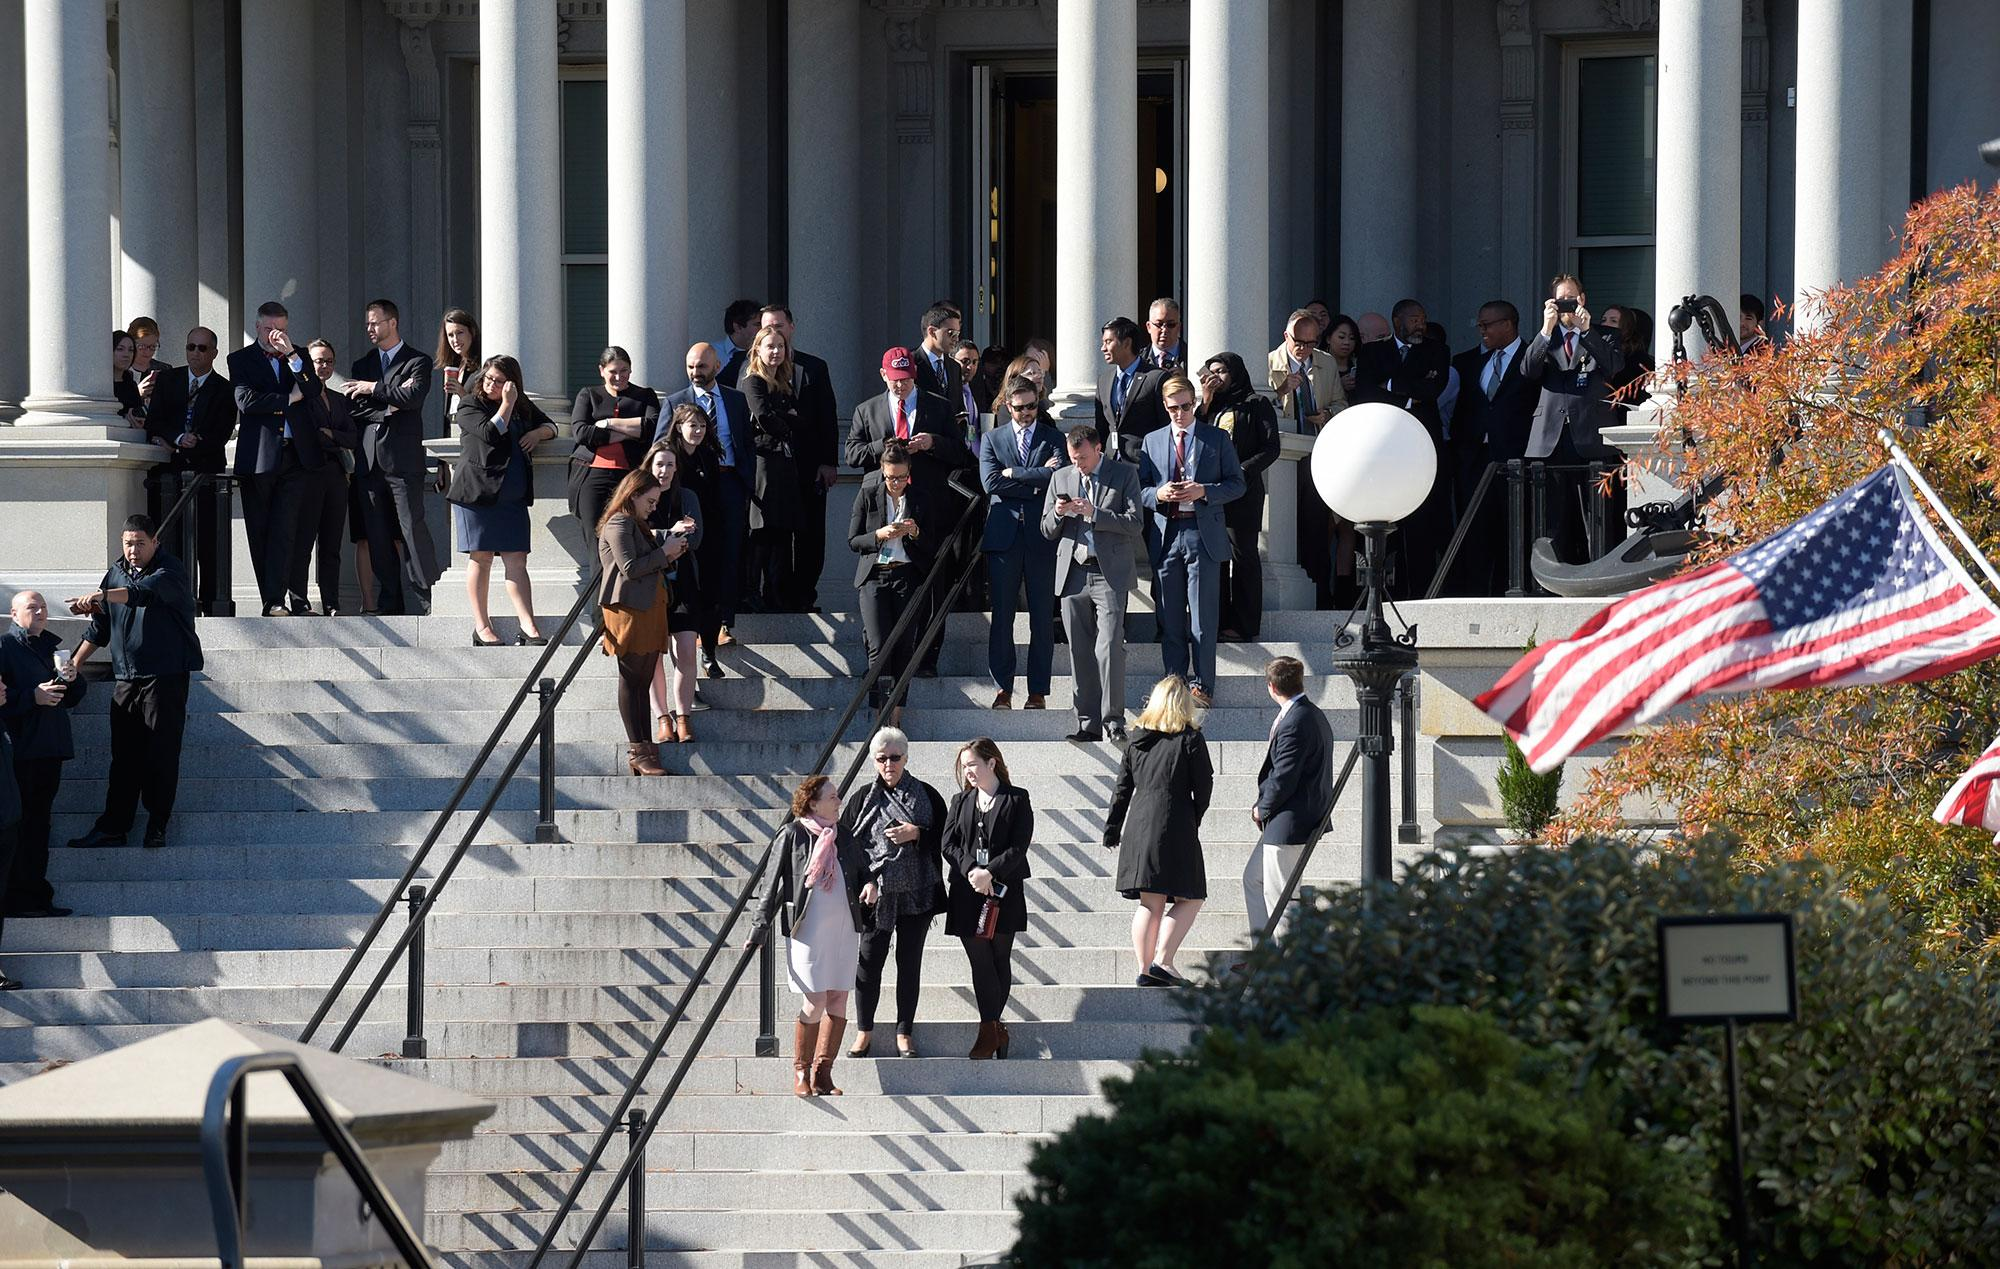 <p>People stand on the steps of the Eisenhower Executive Office Building, next to the White House, in Washington, Thursday, Nov. 10, 2016, as they wait for the arrival of President-elect Donald Trump for his meeting with President Obama. (AP Photo/Susan Walsh) </p>